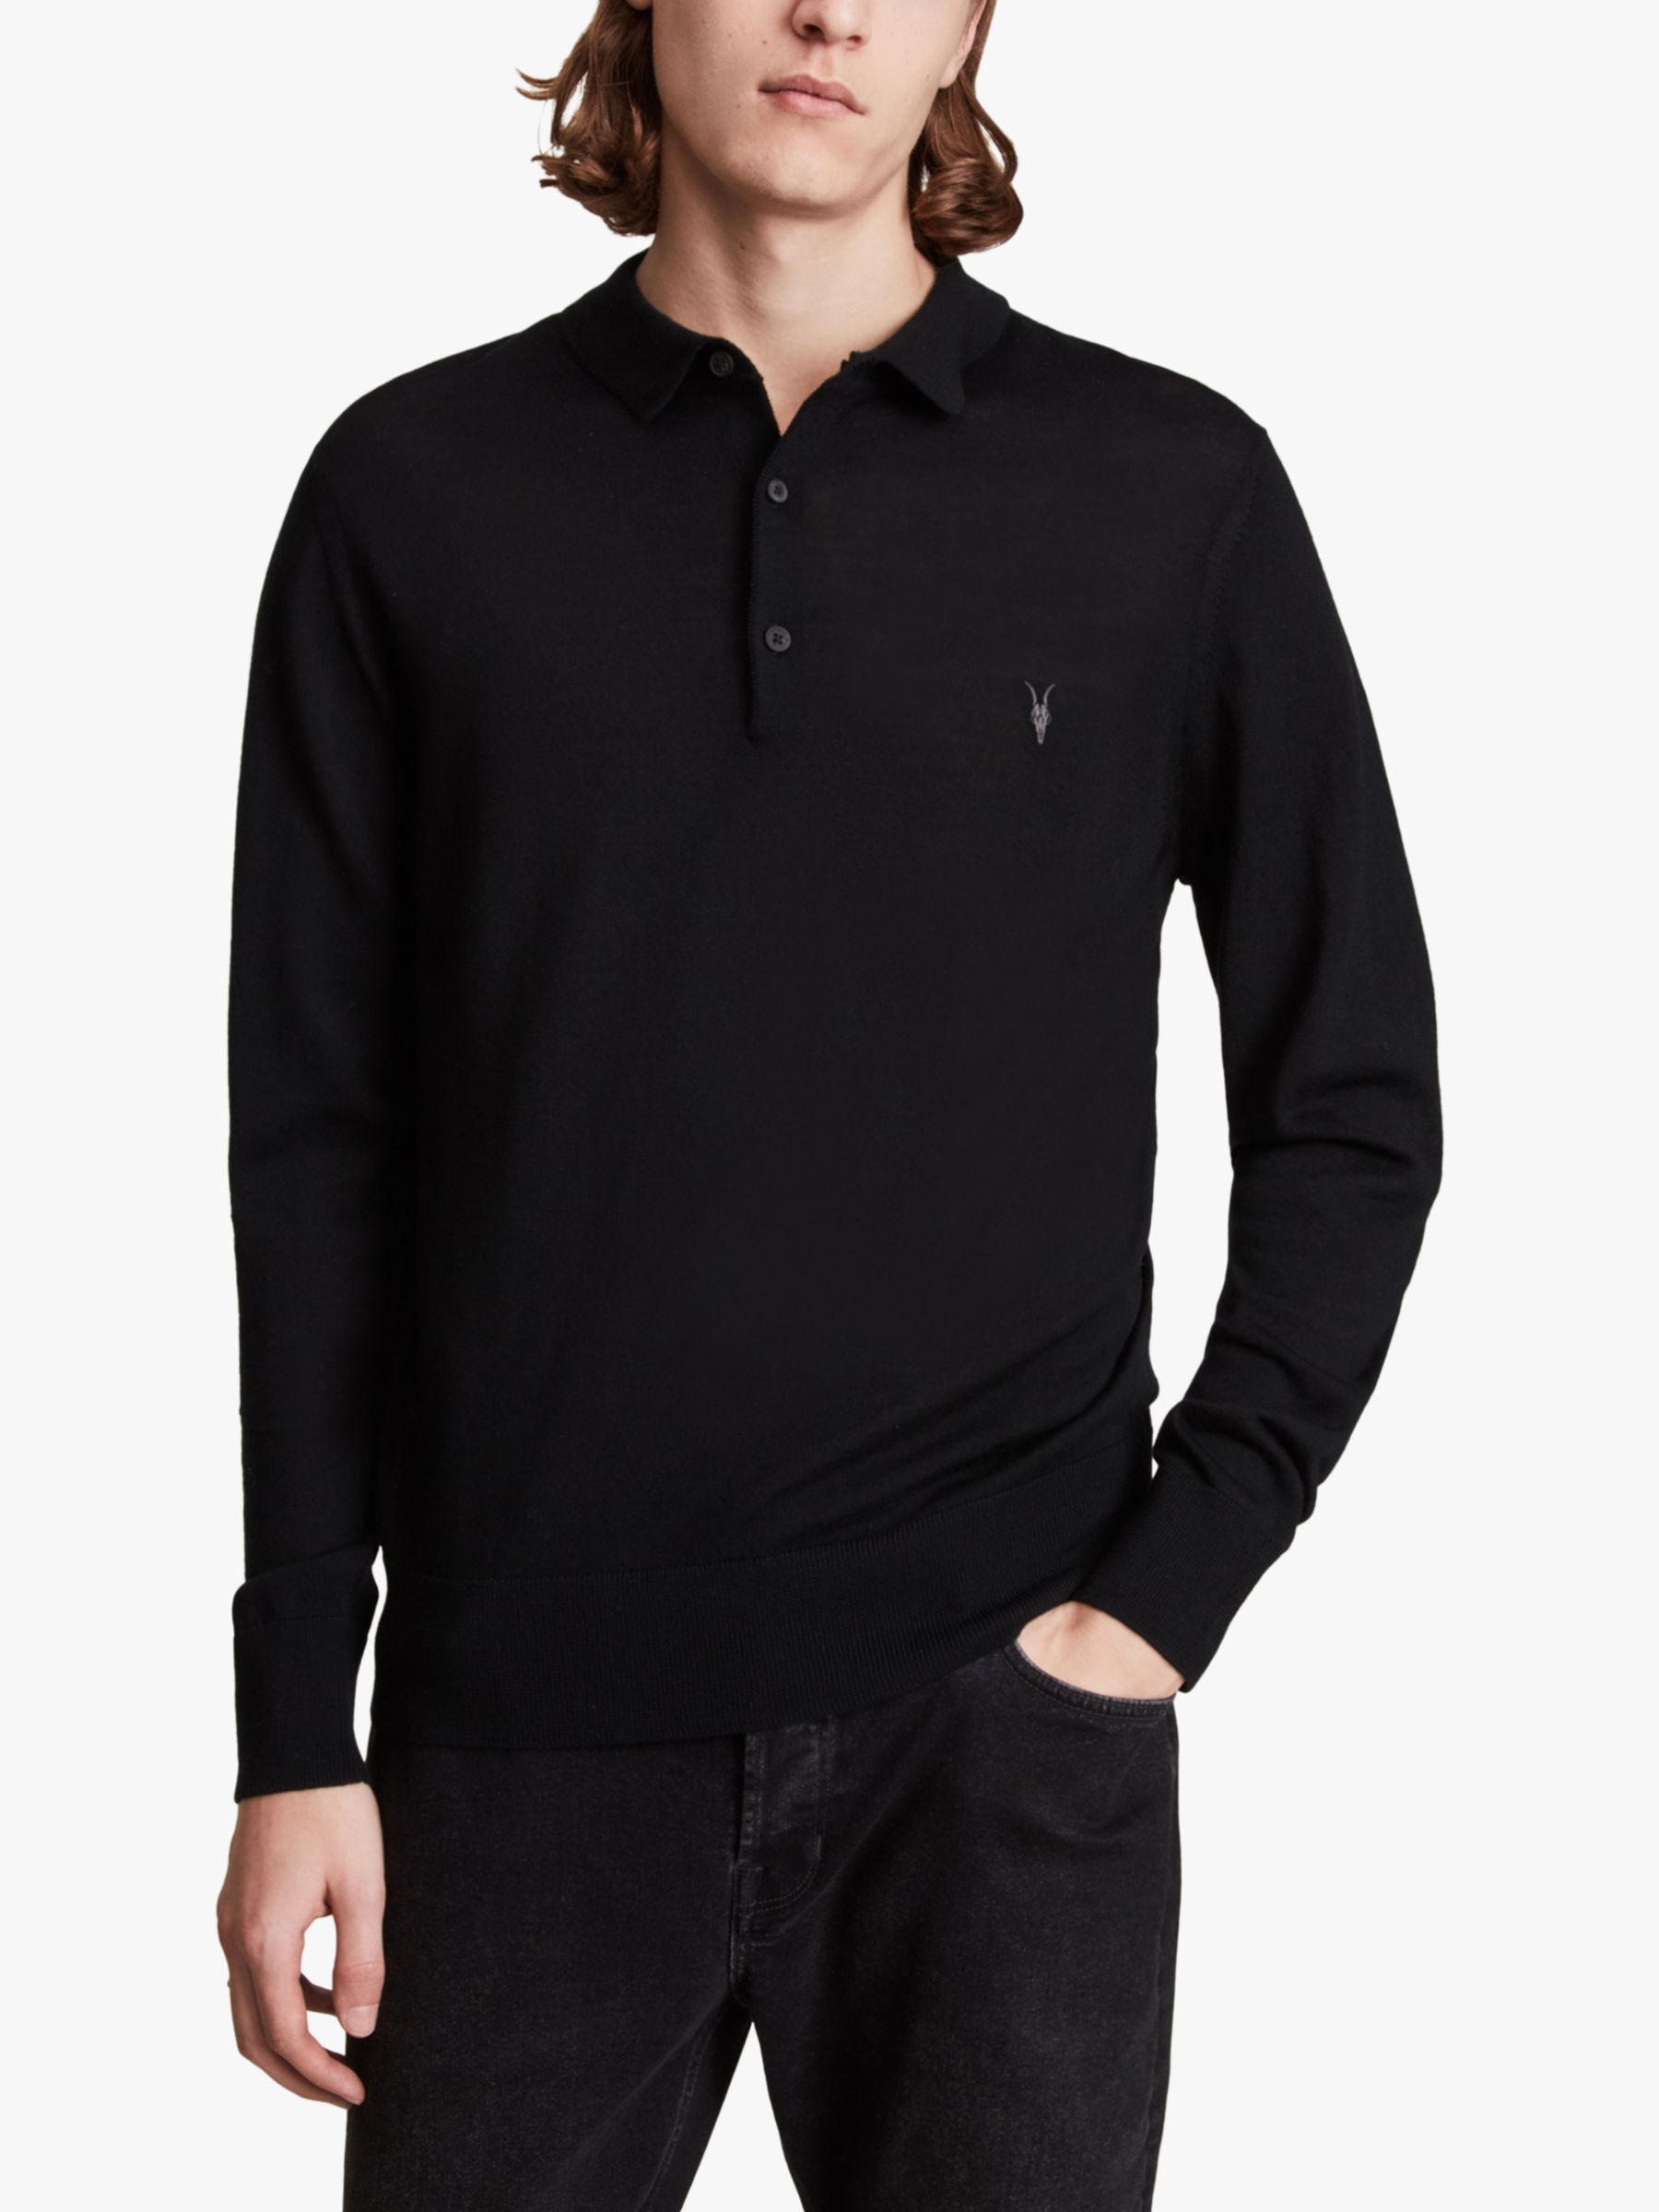 AllSaints AllSaints Mode Merino Slim Fit Polo Shirt